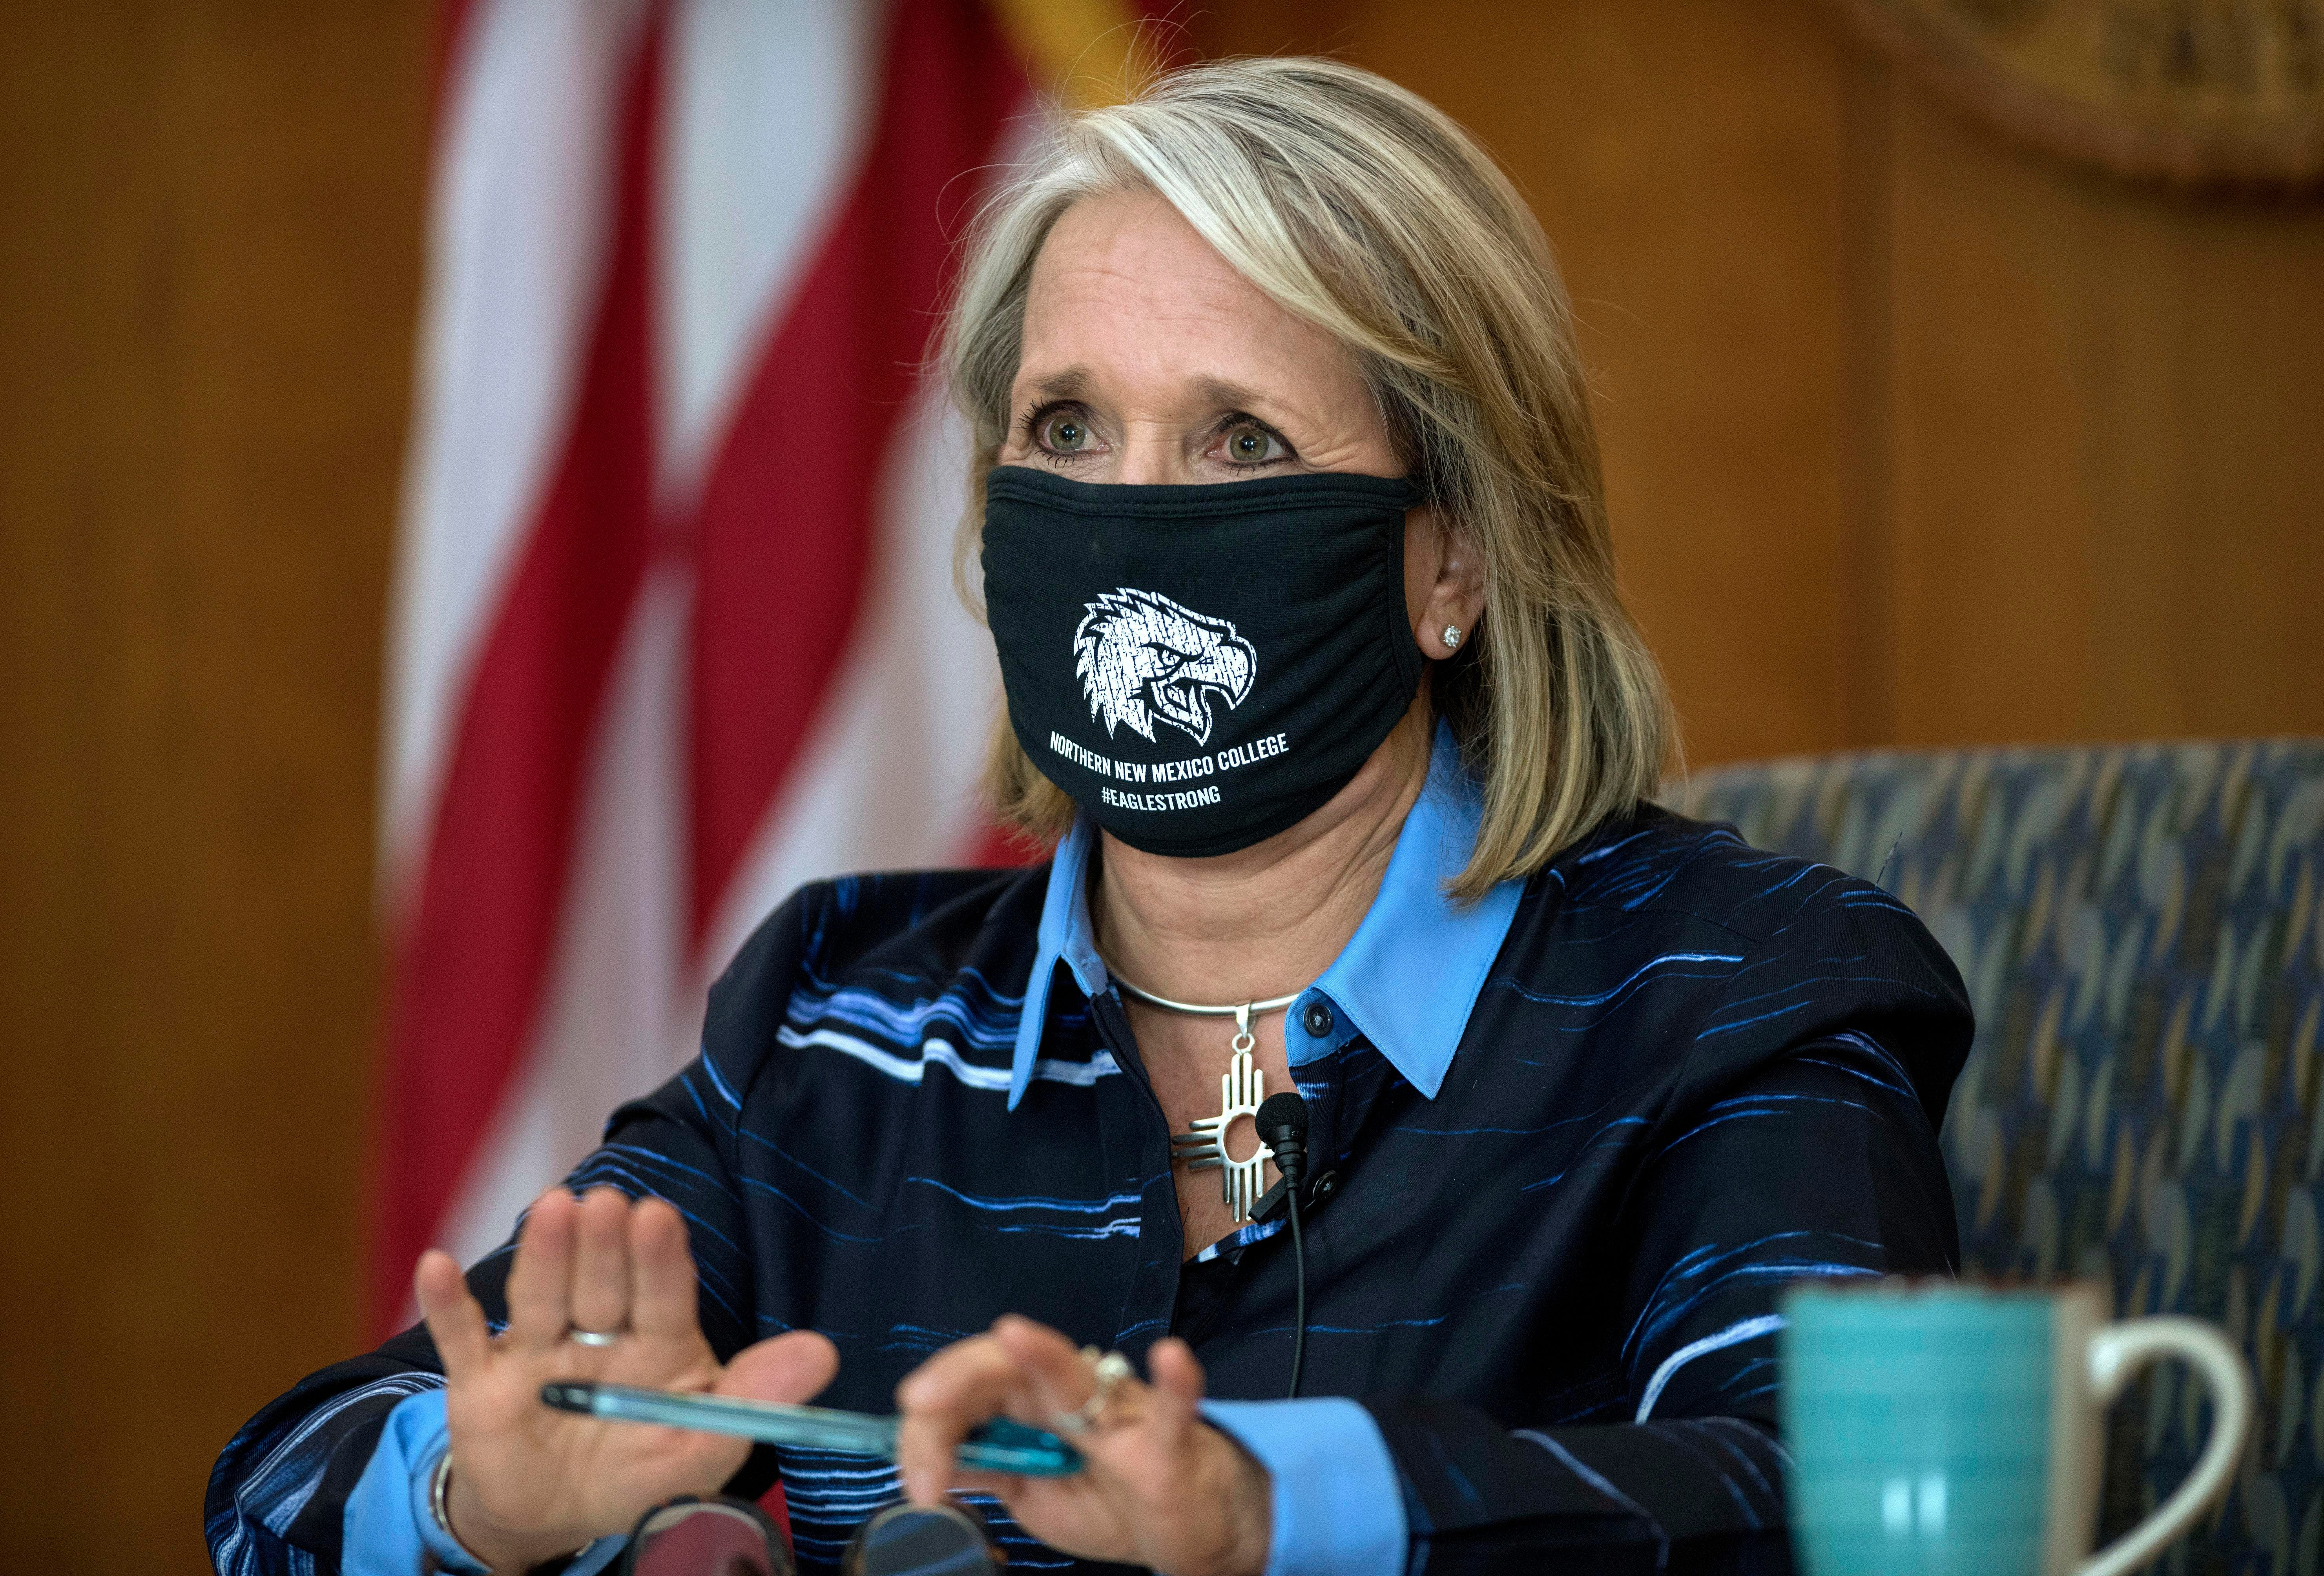 Gov. Michelle Lujan Grisham gives a weekly update on COVID-19 and the state's effort to contain it during a virtual news conference from the state Capitol in Santa Fe, N.M.